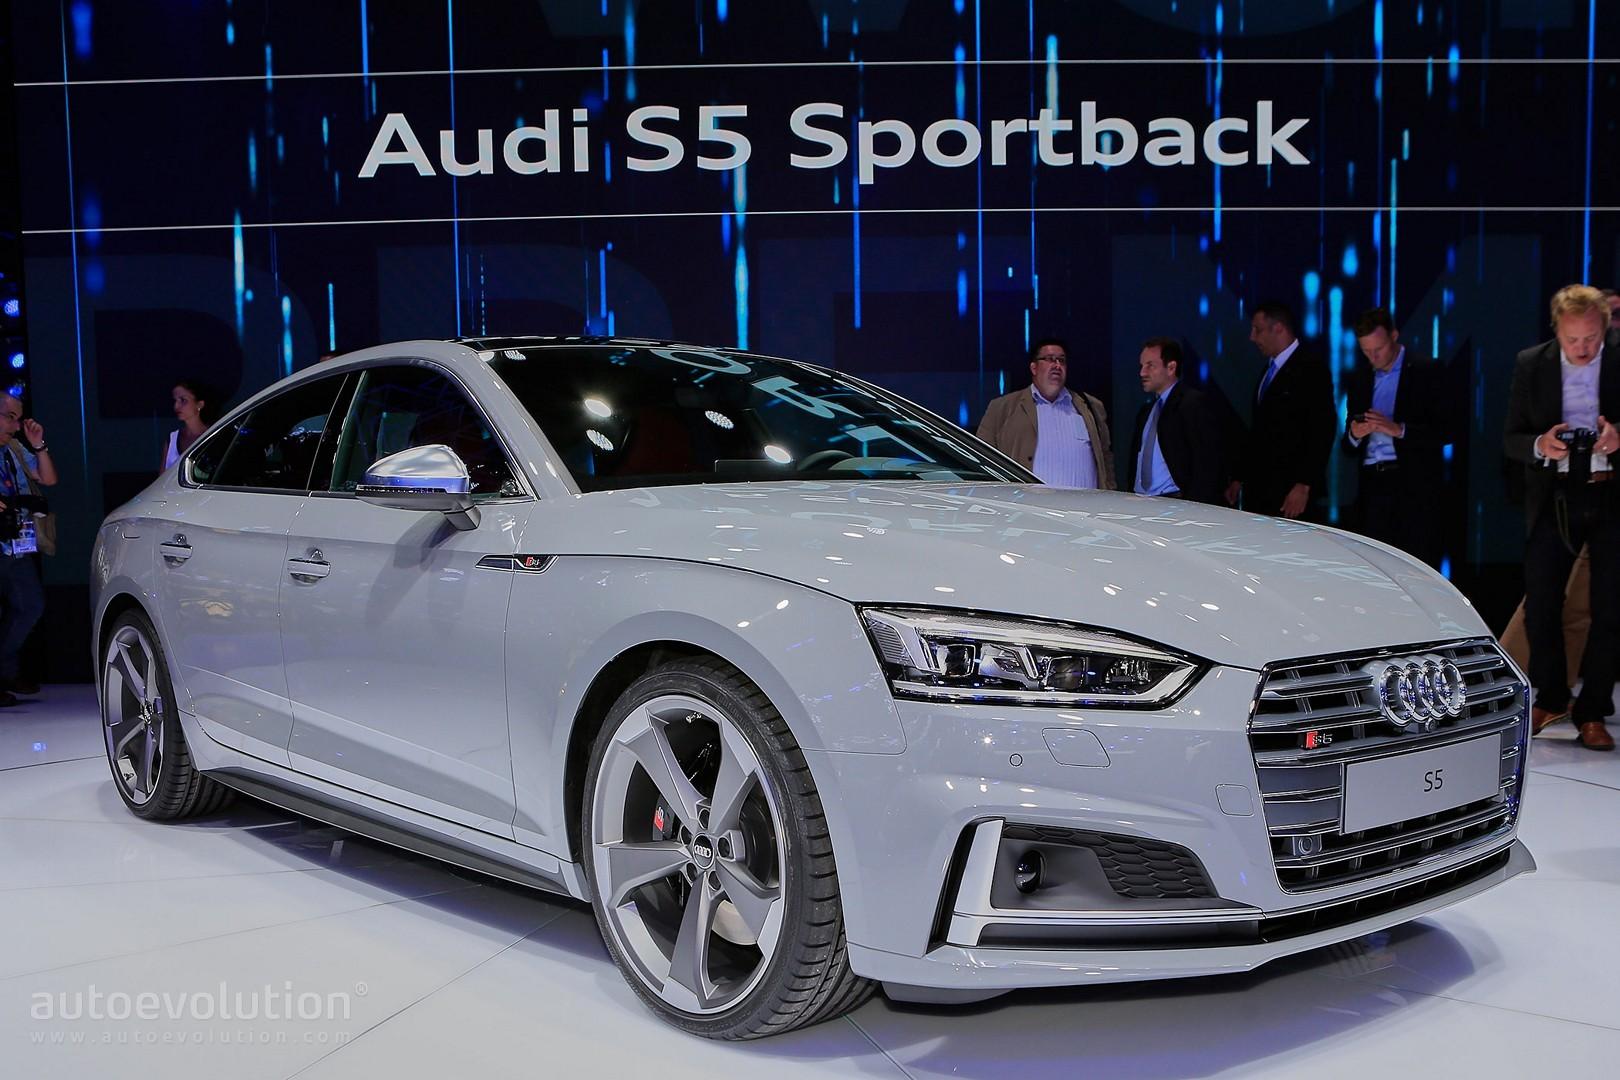 2017 audi s5 sportback looks like a shark thanks to nardo gray paint autoevolution. Black Bedroom Furniture Sets. Home Design Ideas